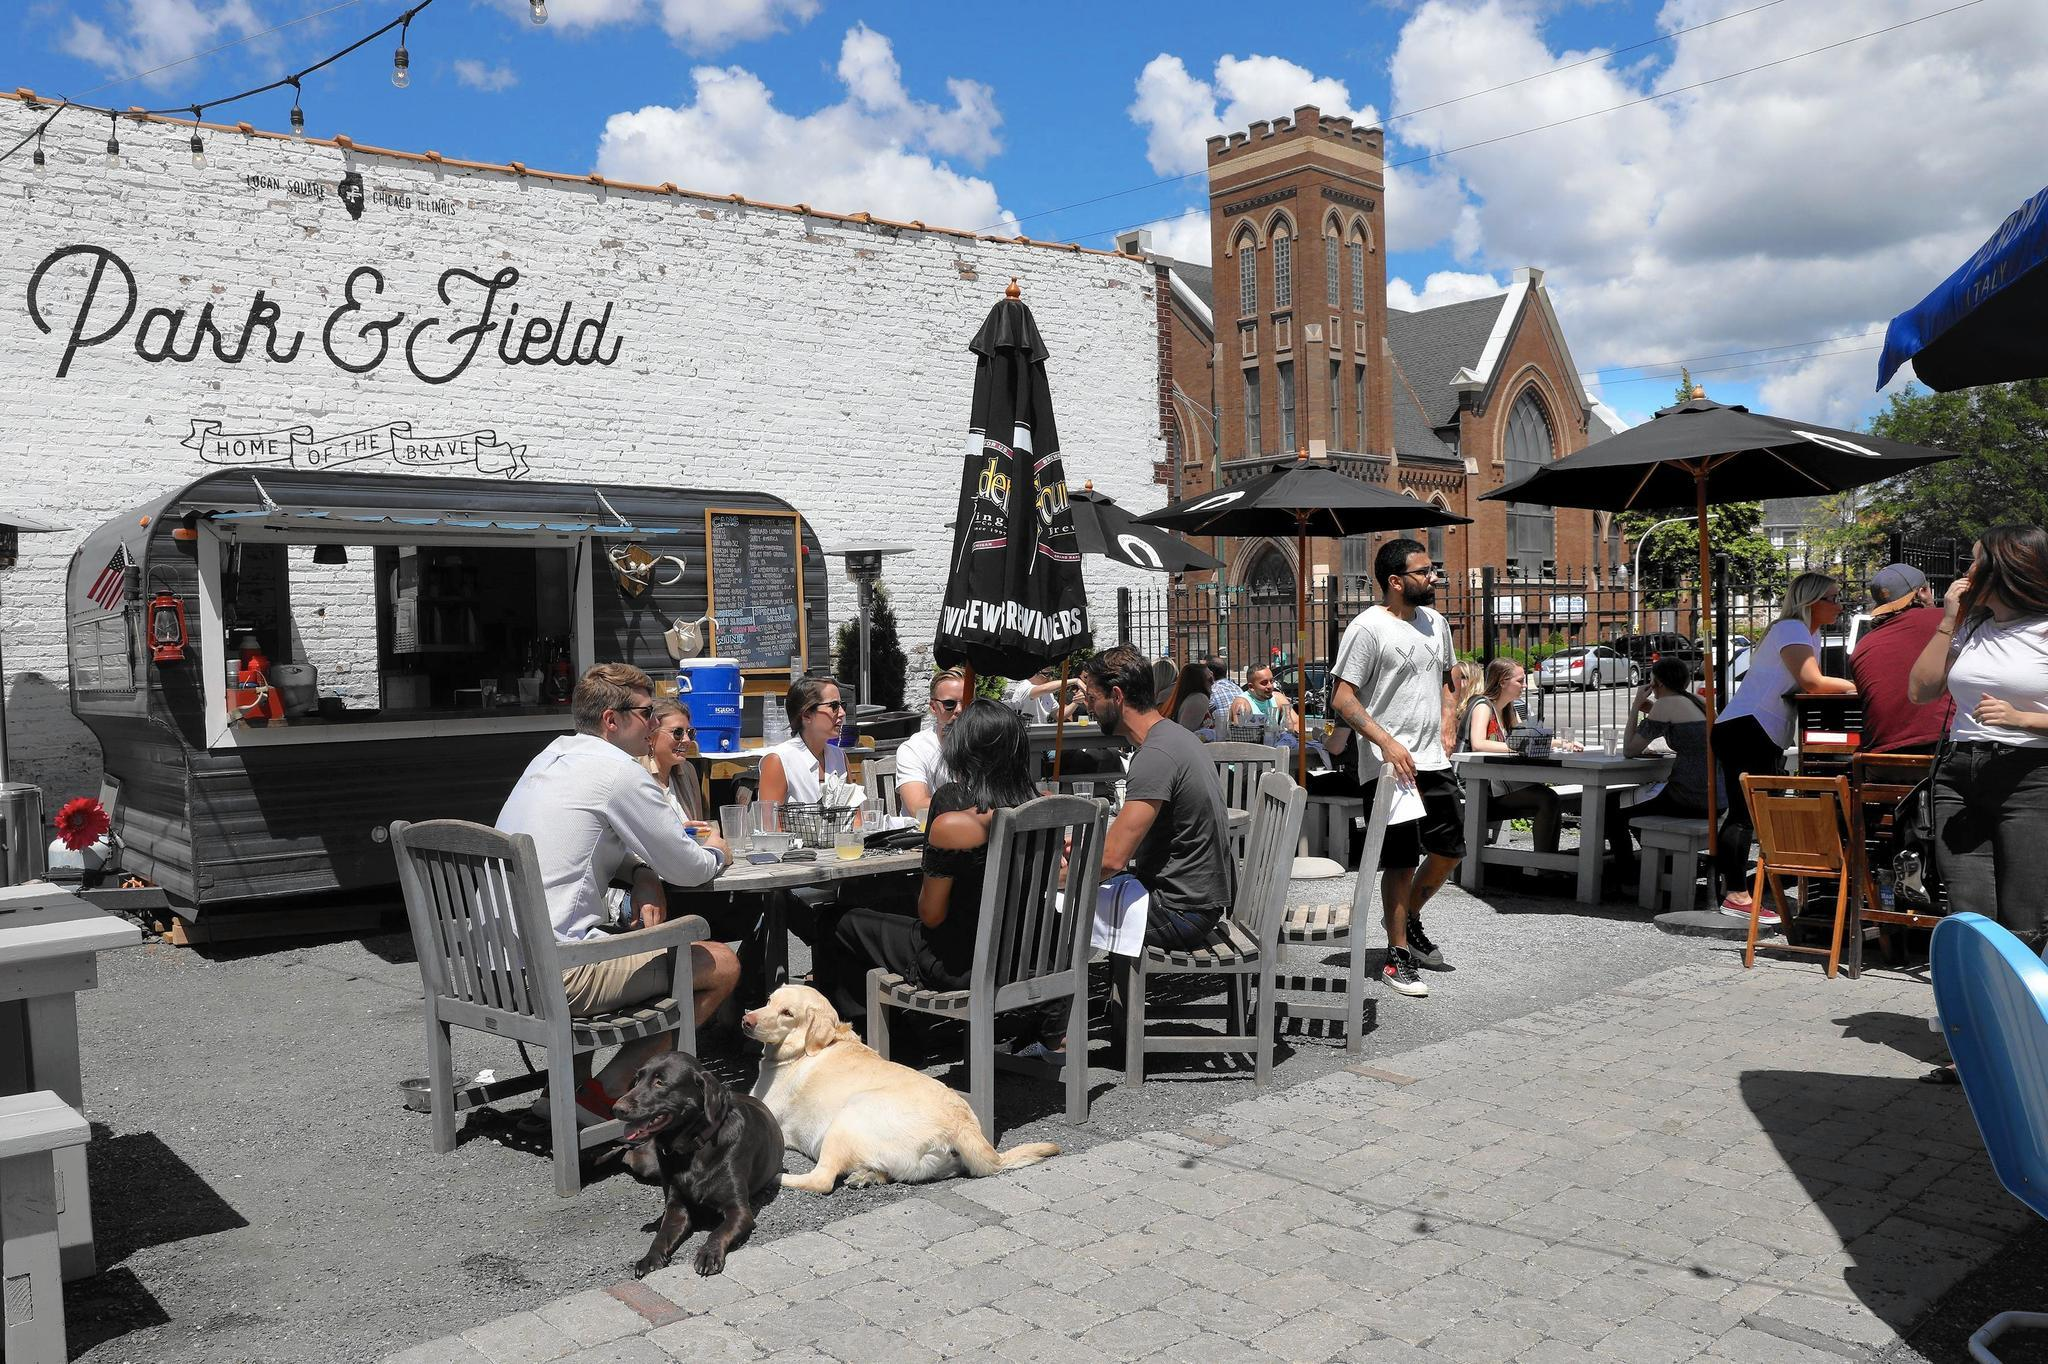 Our 10 favorite dog-friendly restaurant patios in Chicago